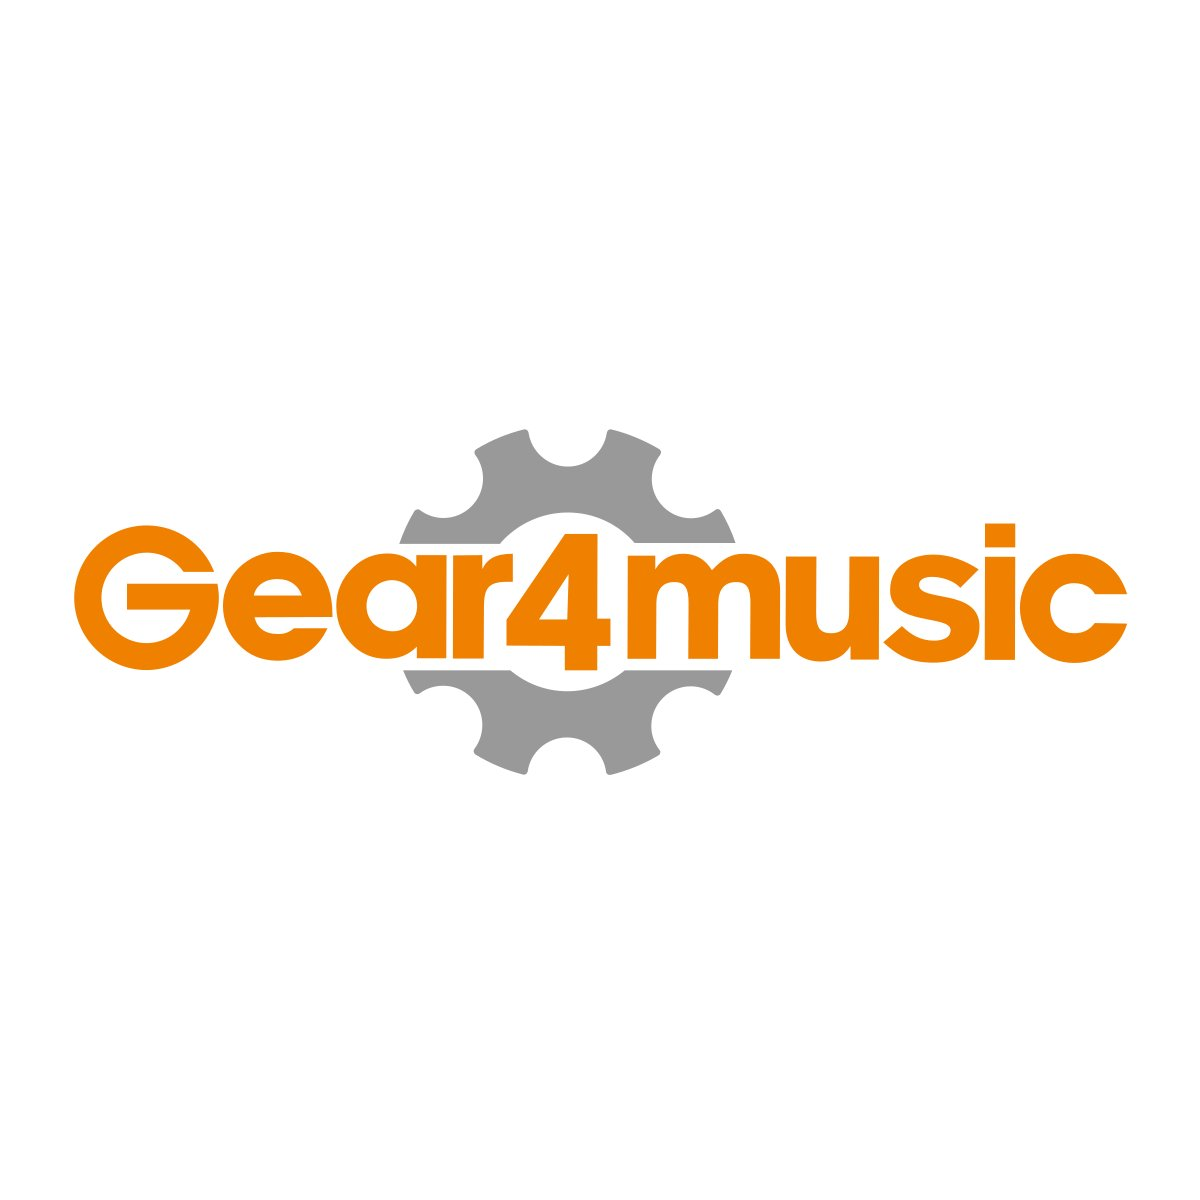 4 Boom Mic Stand and Bag Pack by Gear4music